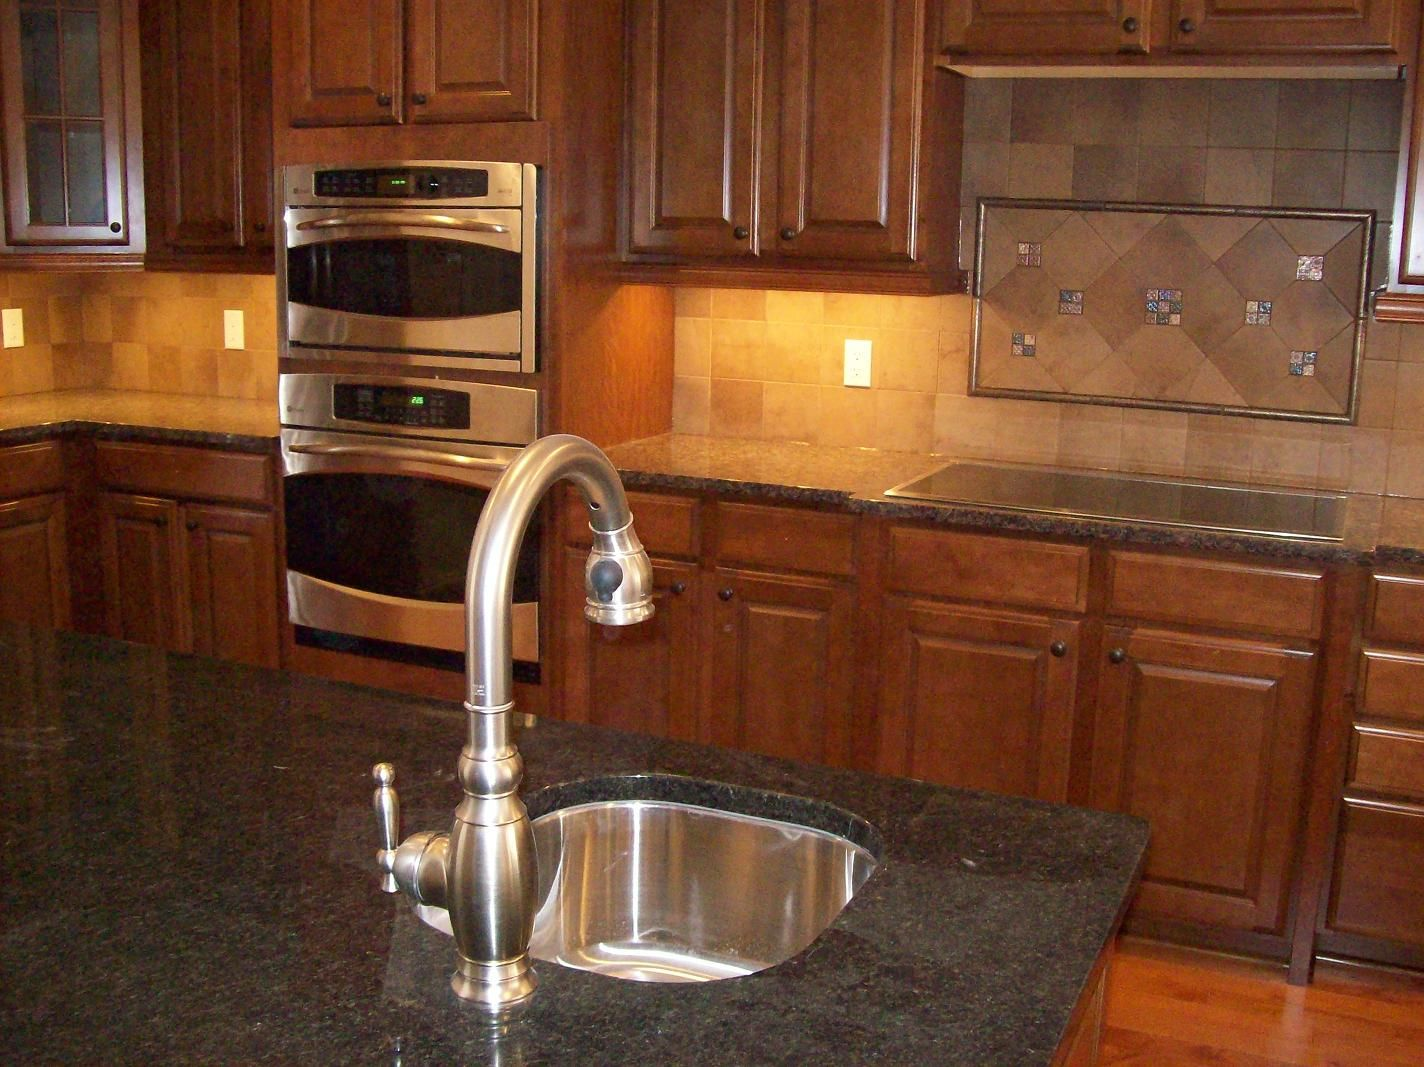 10 simple backsplash ideas for your kitchen backsplash for Kitchen without tiles